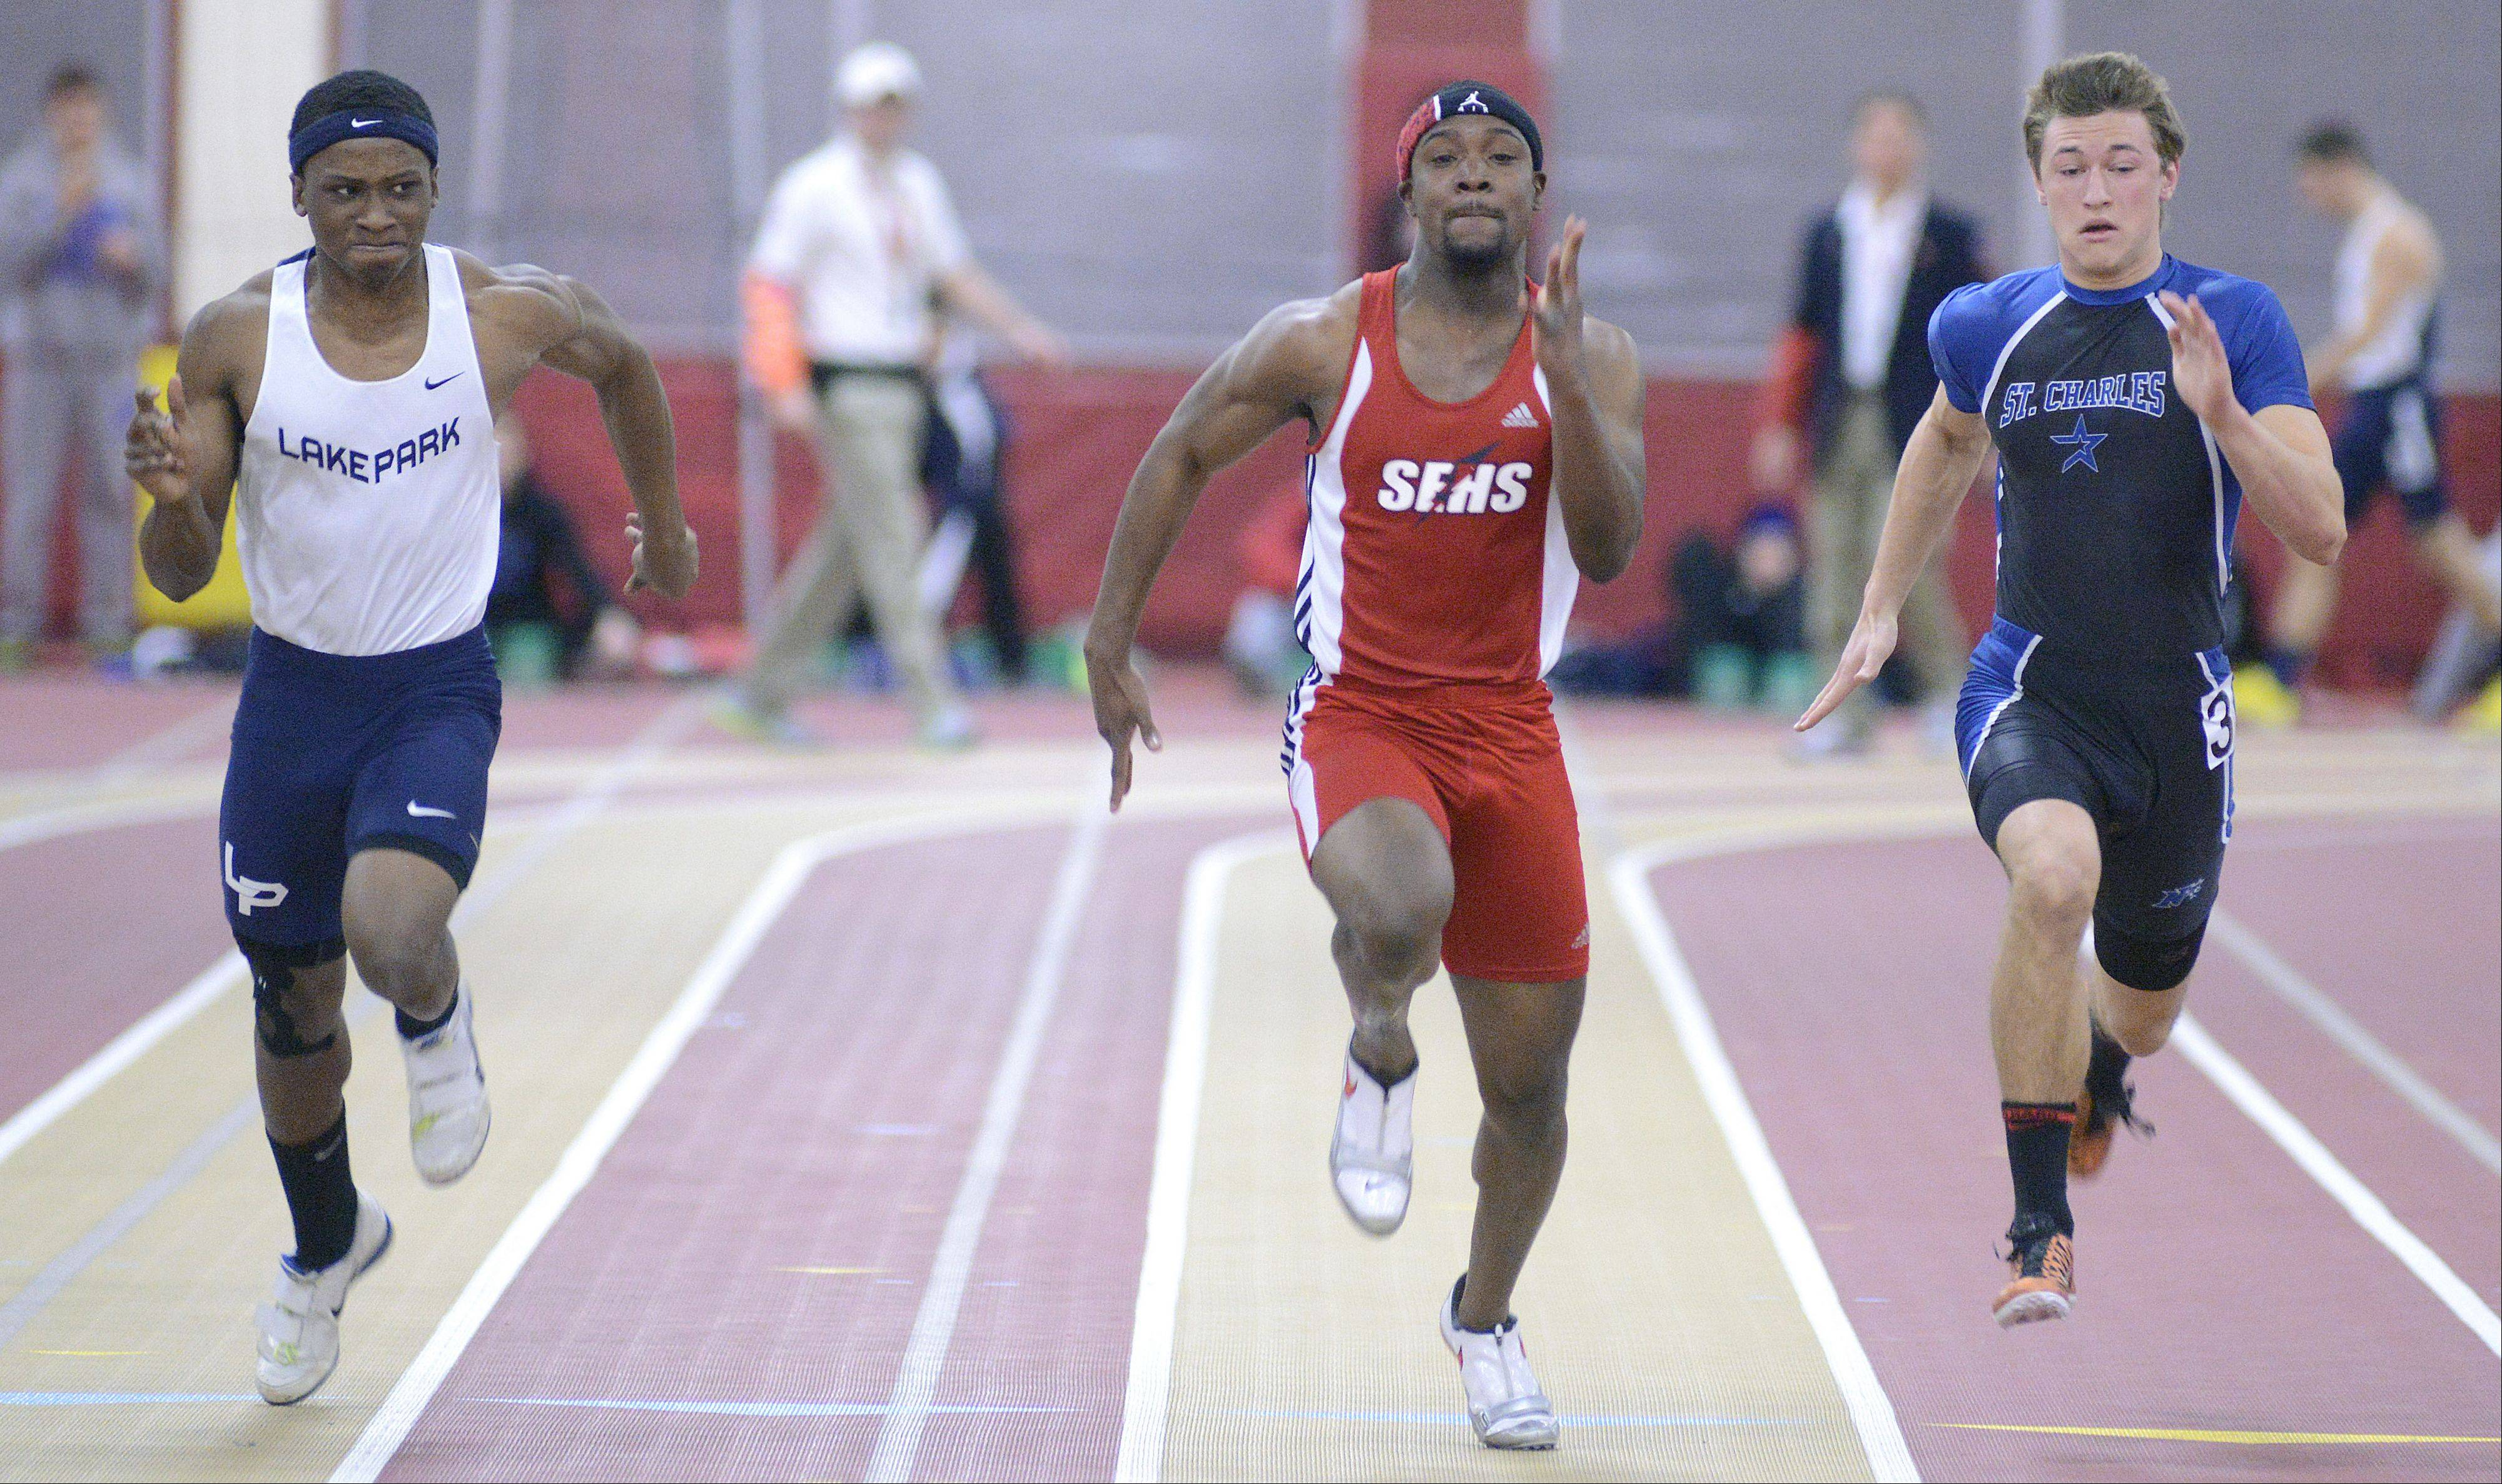 Lake Park's Marcus Jegede, South Elgin's Jeff Broger and St. Charles' North's Josh Phelan in the second heat of the 55 meter dash prelim at the Upstate Eight Conference in Batavia on Saturday, March 16.